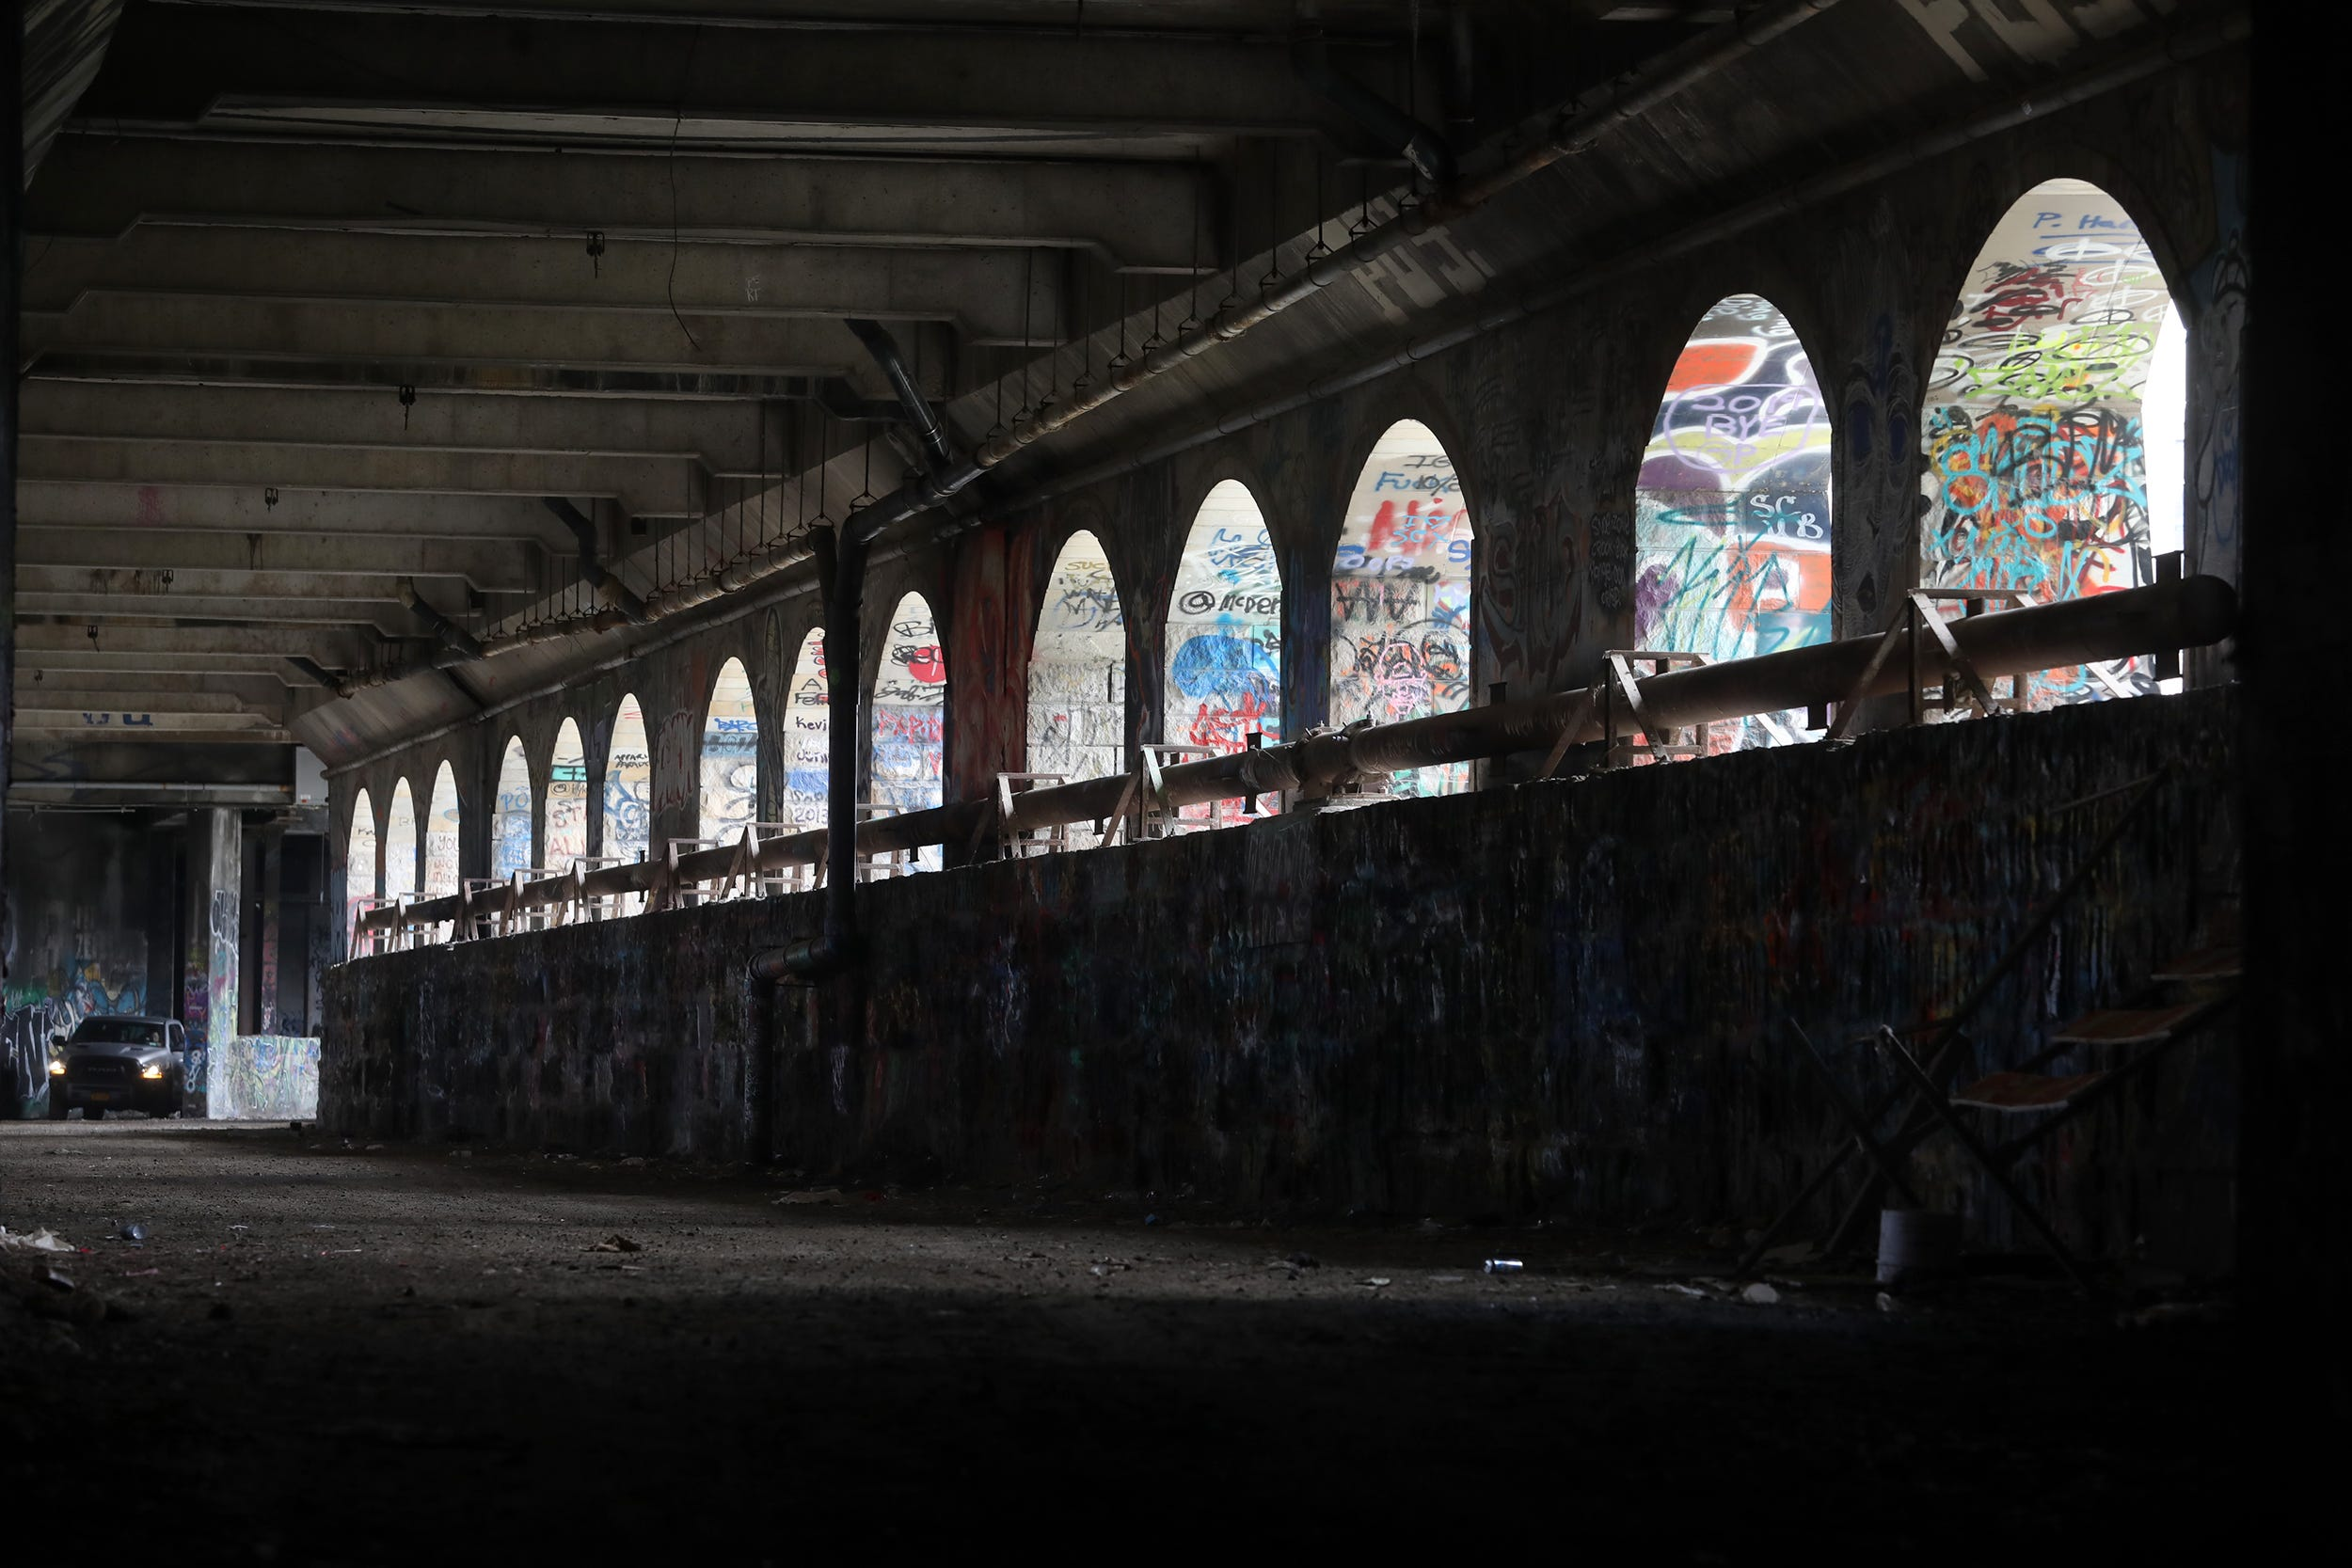 Just about every inch of the subway over the Genesee River including the archway is filled with graffiti. Graffiti artists use the former subway tunnel in downtown Rochester as their canvas on June 9, 2021.